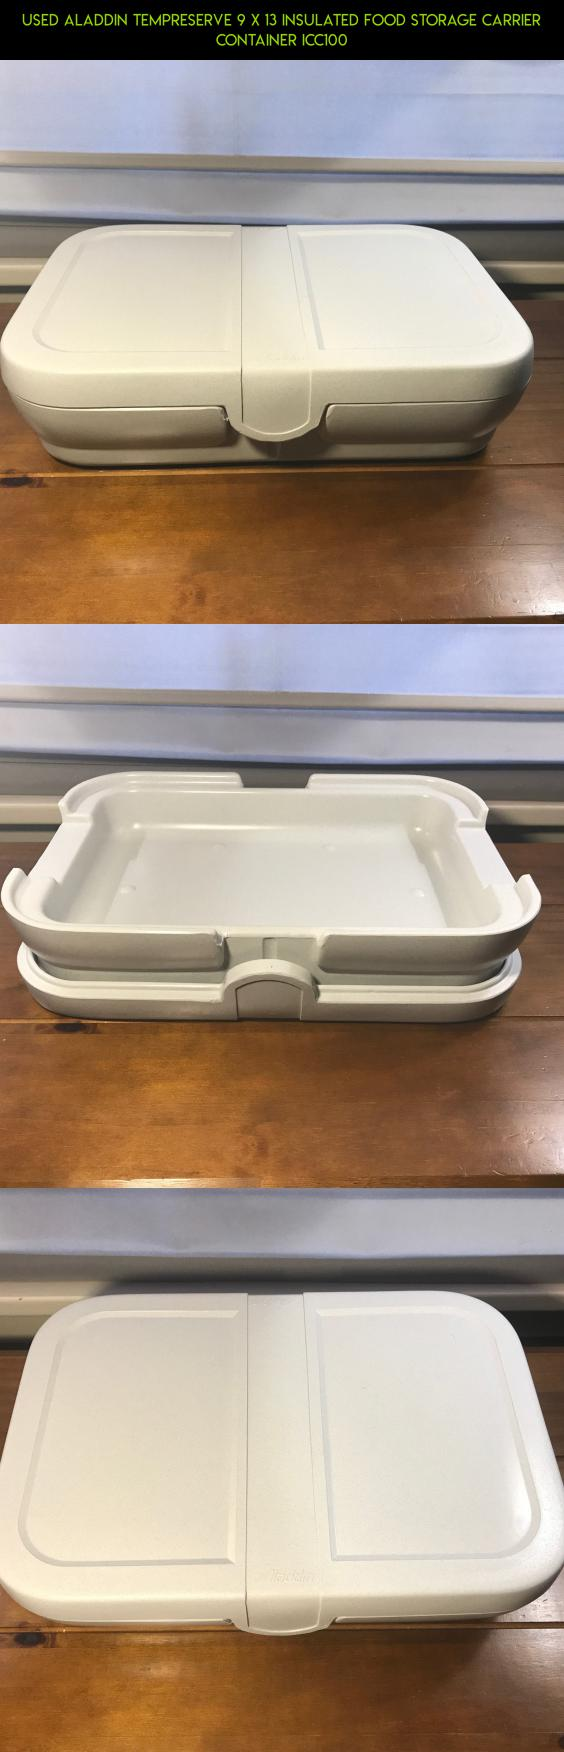 Used Aladdin Tempreserve 9 x 13 Insulated Food Storage Carrier Container ICC100 #plans #gadgets #fpv #camera #9x13 #storage #technology #parts #kit #shopping #drone #racing #tech #products